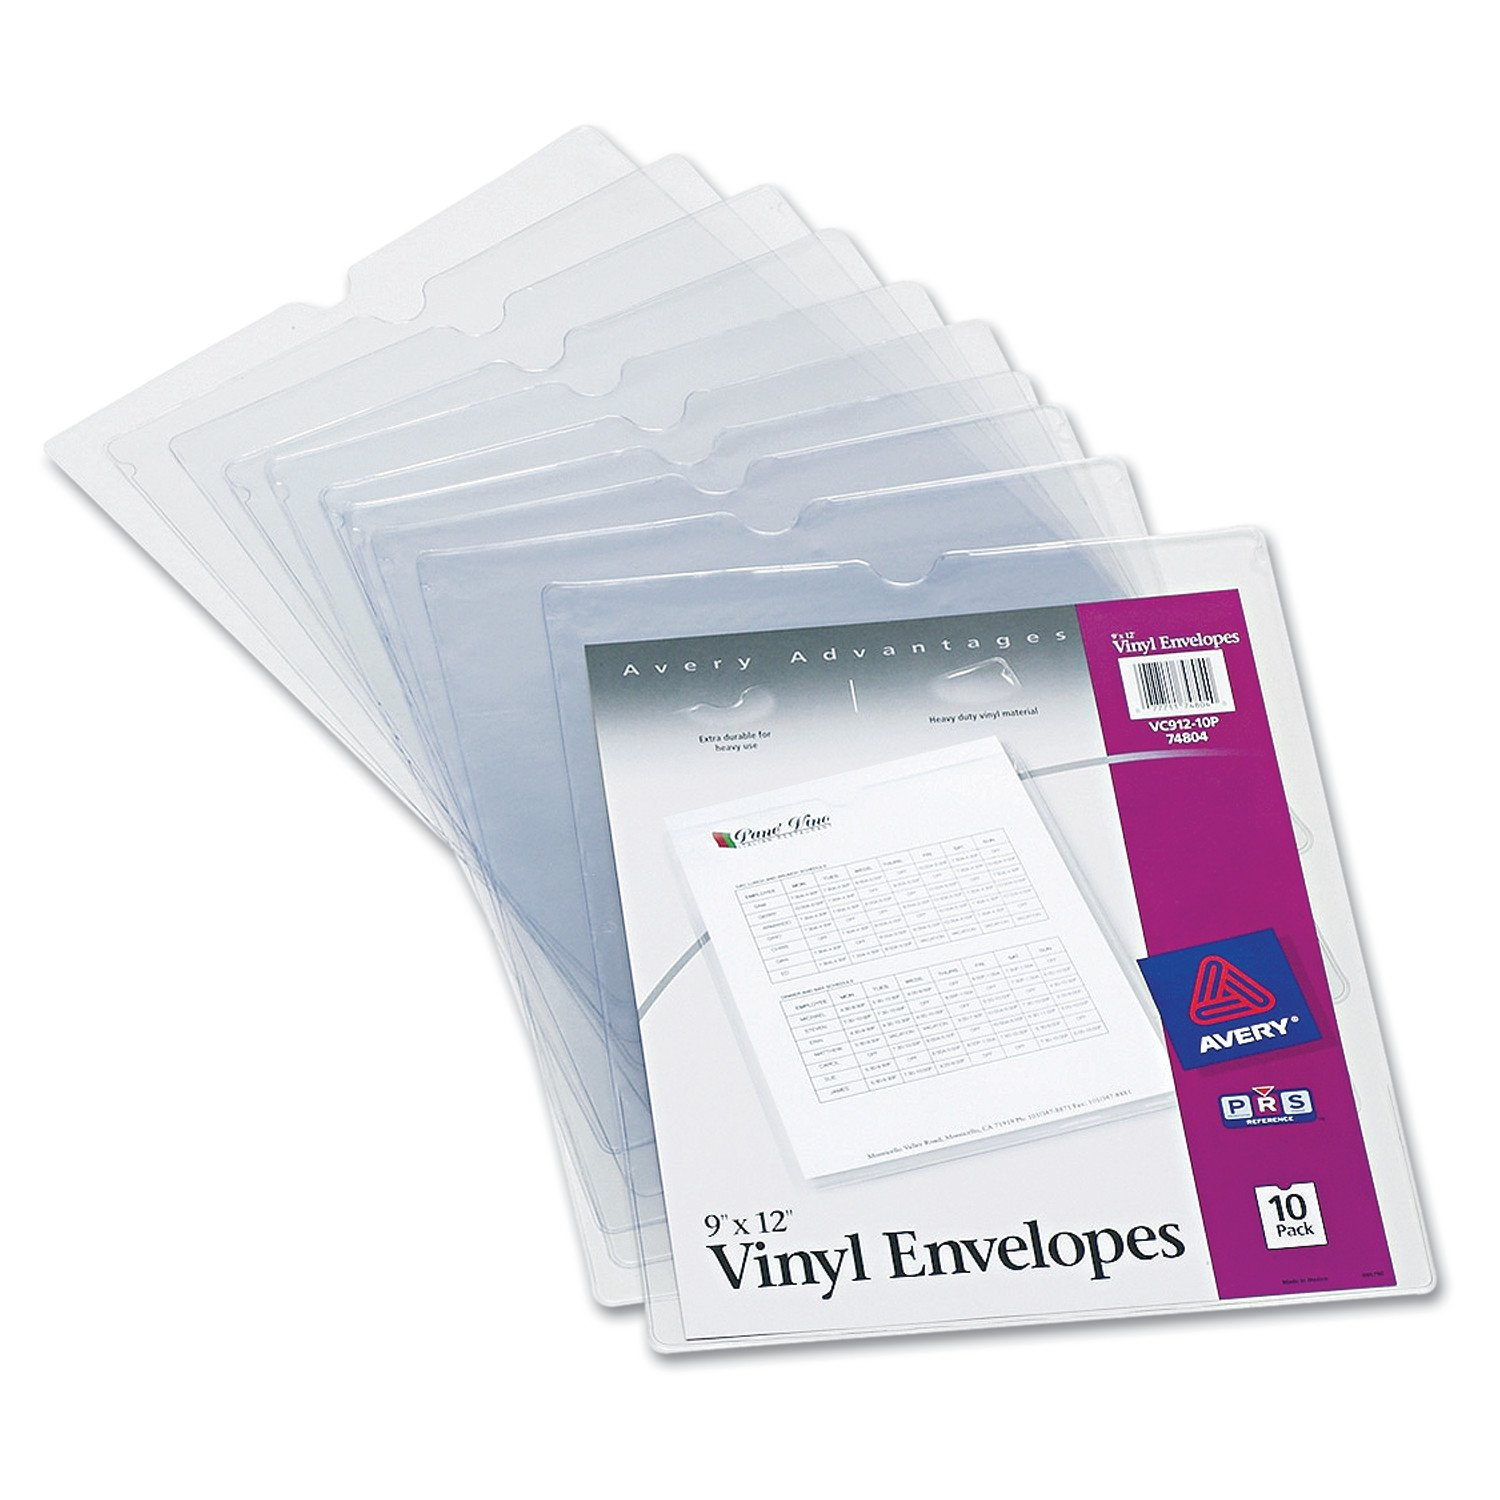 """Avery 74804 Top-Load Clear Vinyl Envelopes w/Thumb Notch, 9"""" x 12"""", Clear (Pack of 10)"""